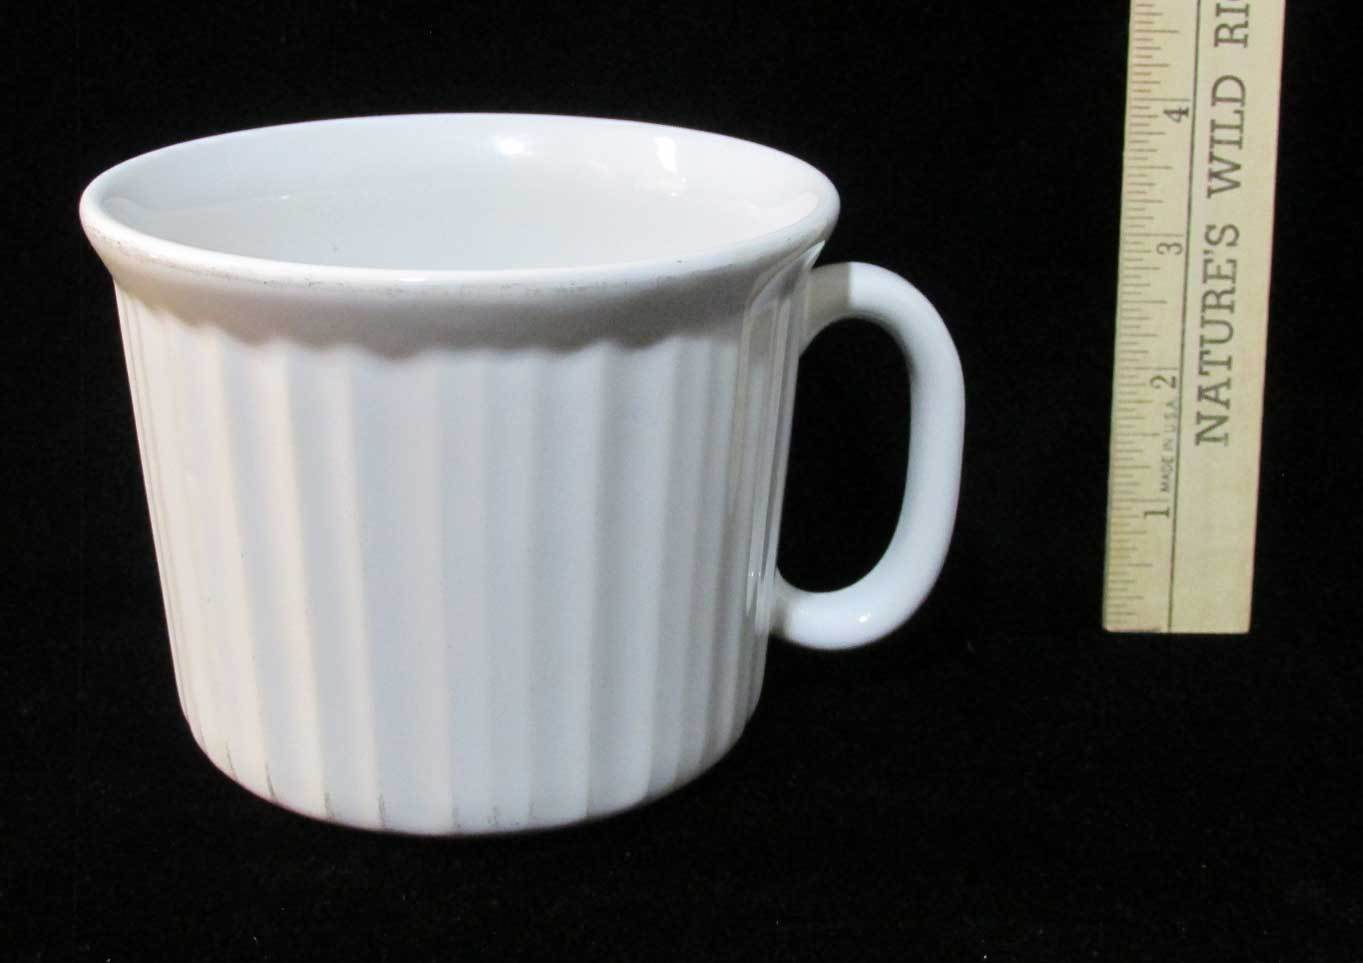 Primary image for Corning Ware Large Soup Mug Cup Bowl White Stoneware w/ Handle Ribbed Design